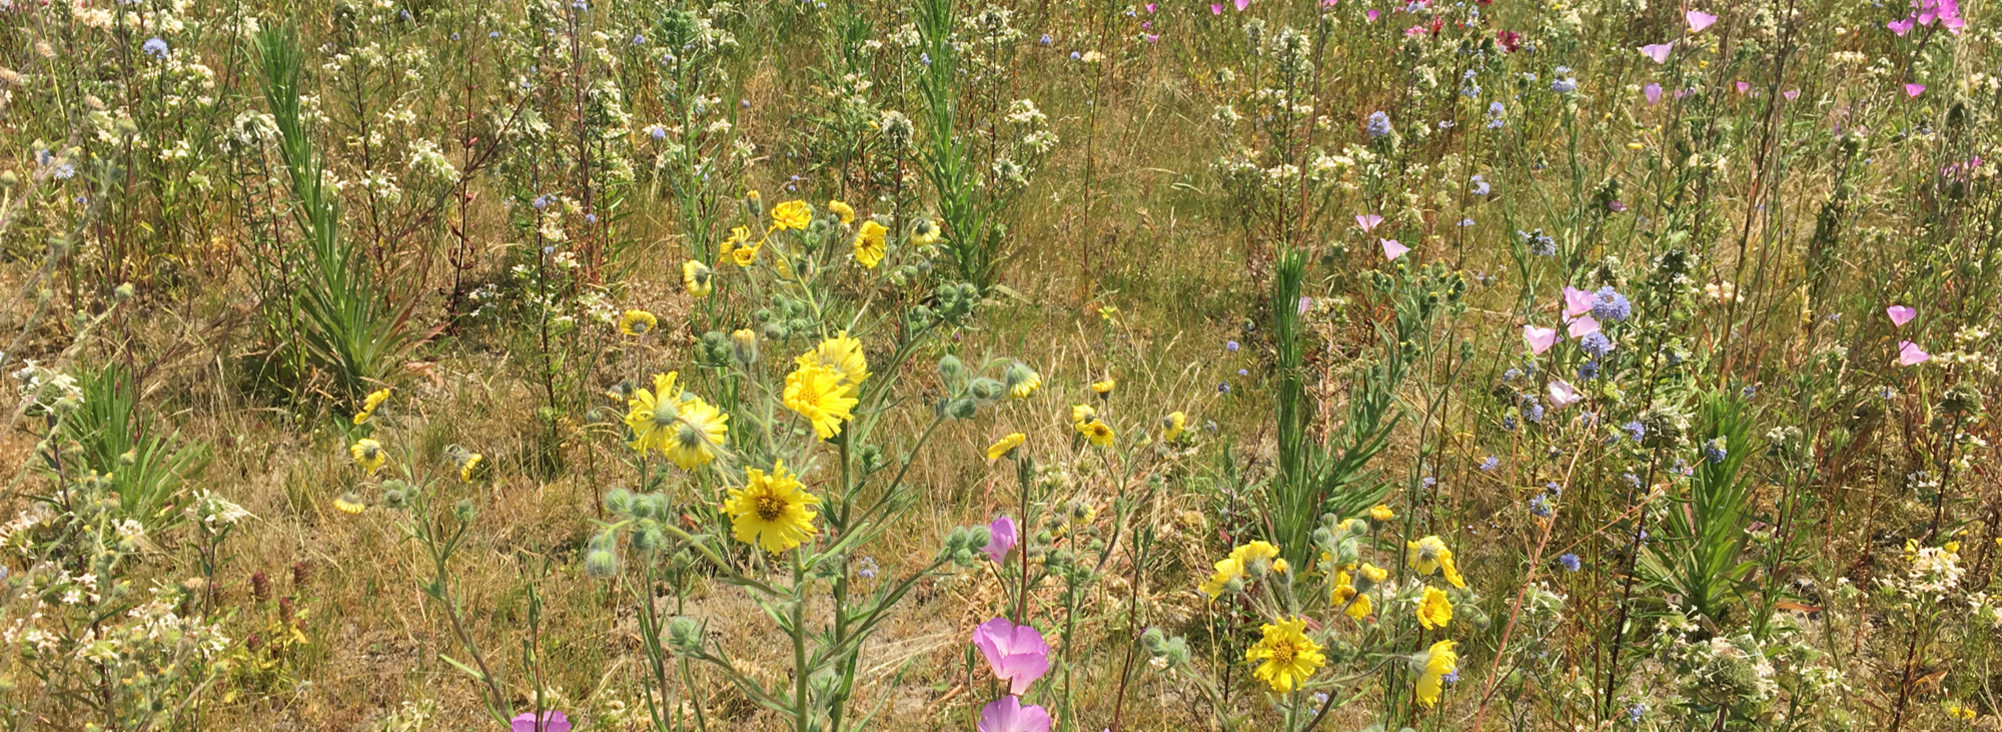 field of wildflowers at St. Johns Prairie